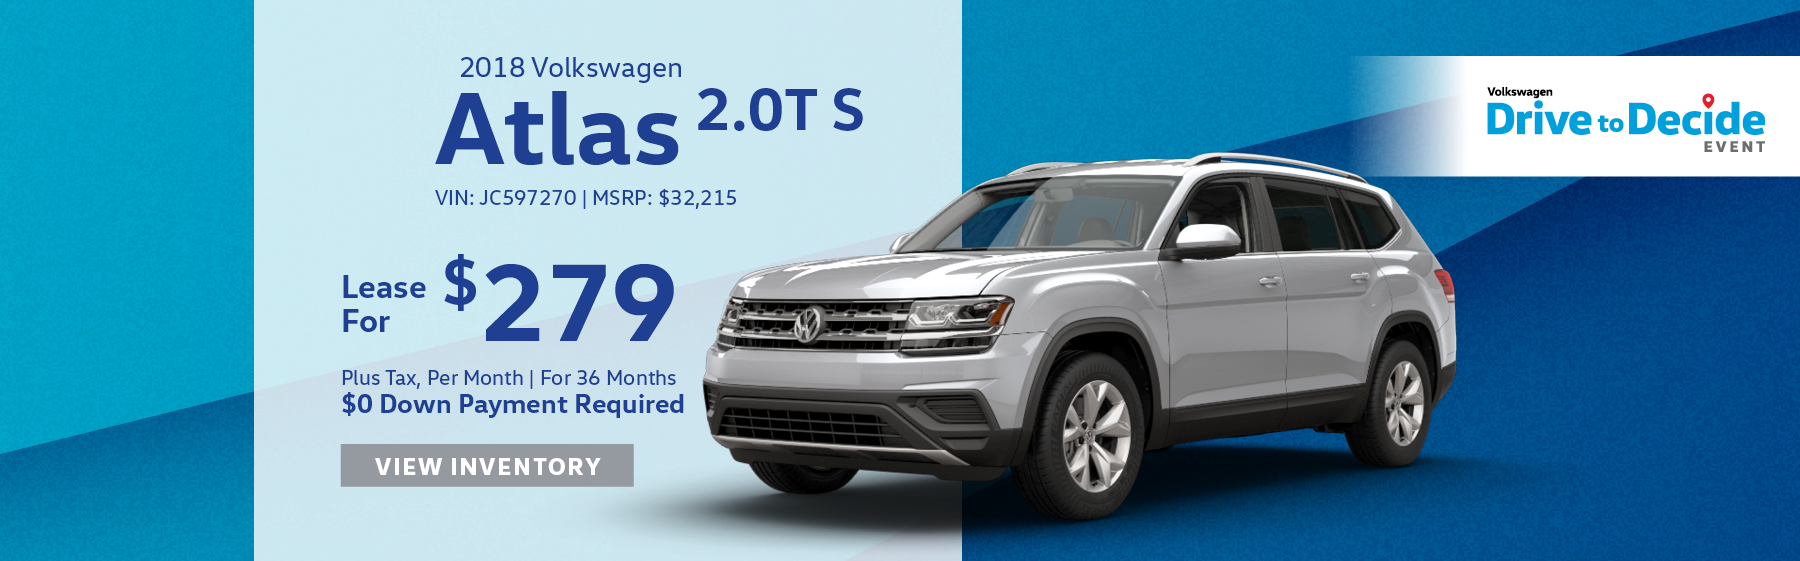 Lease the 2018 Volkswagen Atlas 2.0T S for $279 plus tax for 36 months. $0 Down payment required.